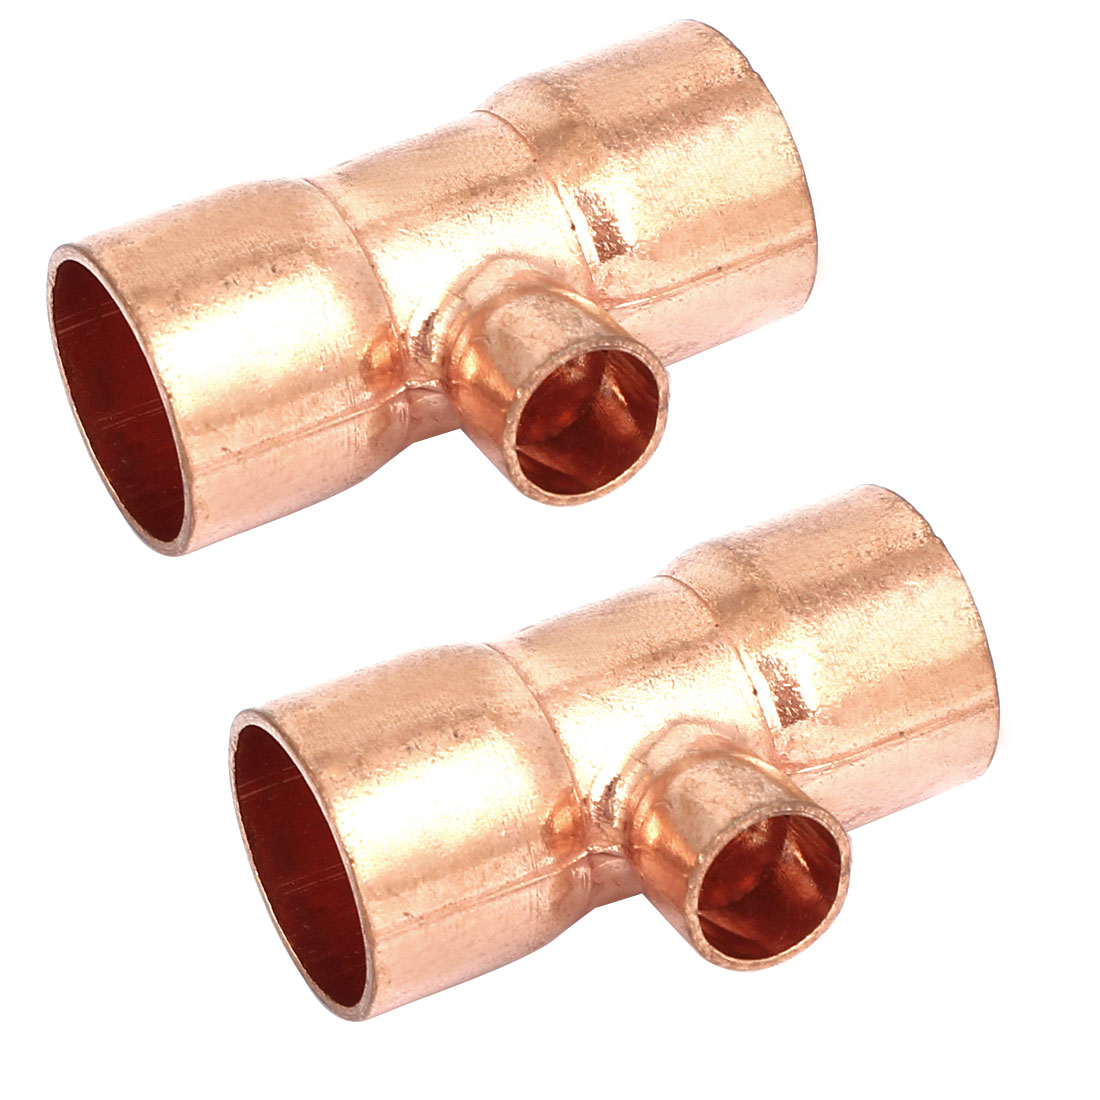 19mmx10mm Copper Tee Reducing Fitting Air Conditioner Plumbing Accessory 2pcs